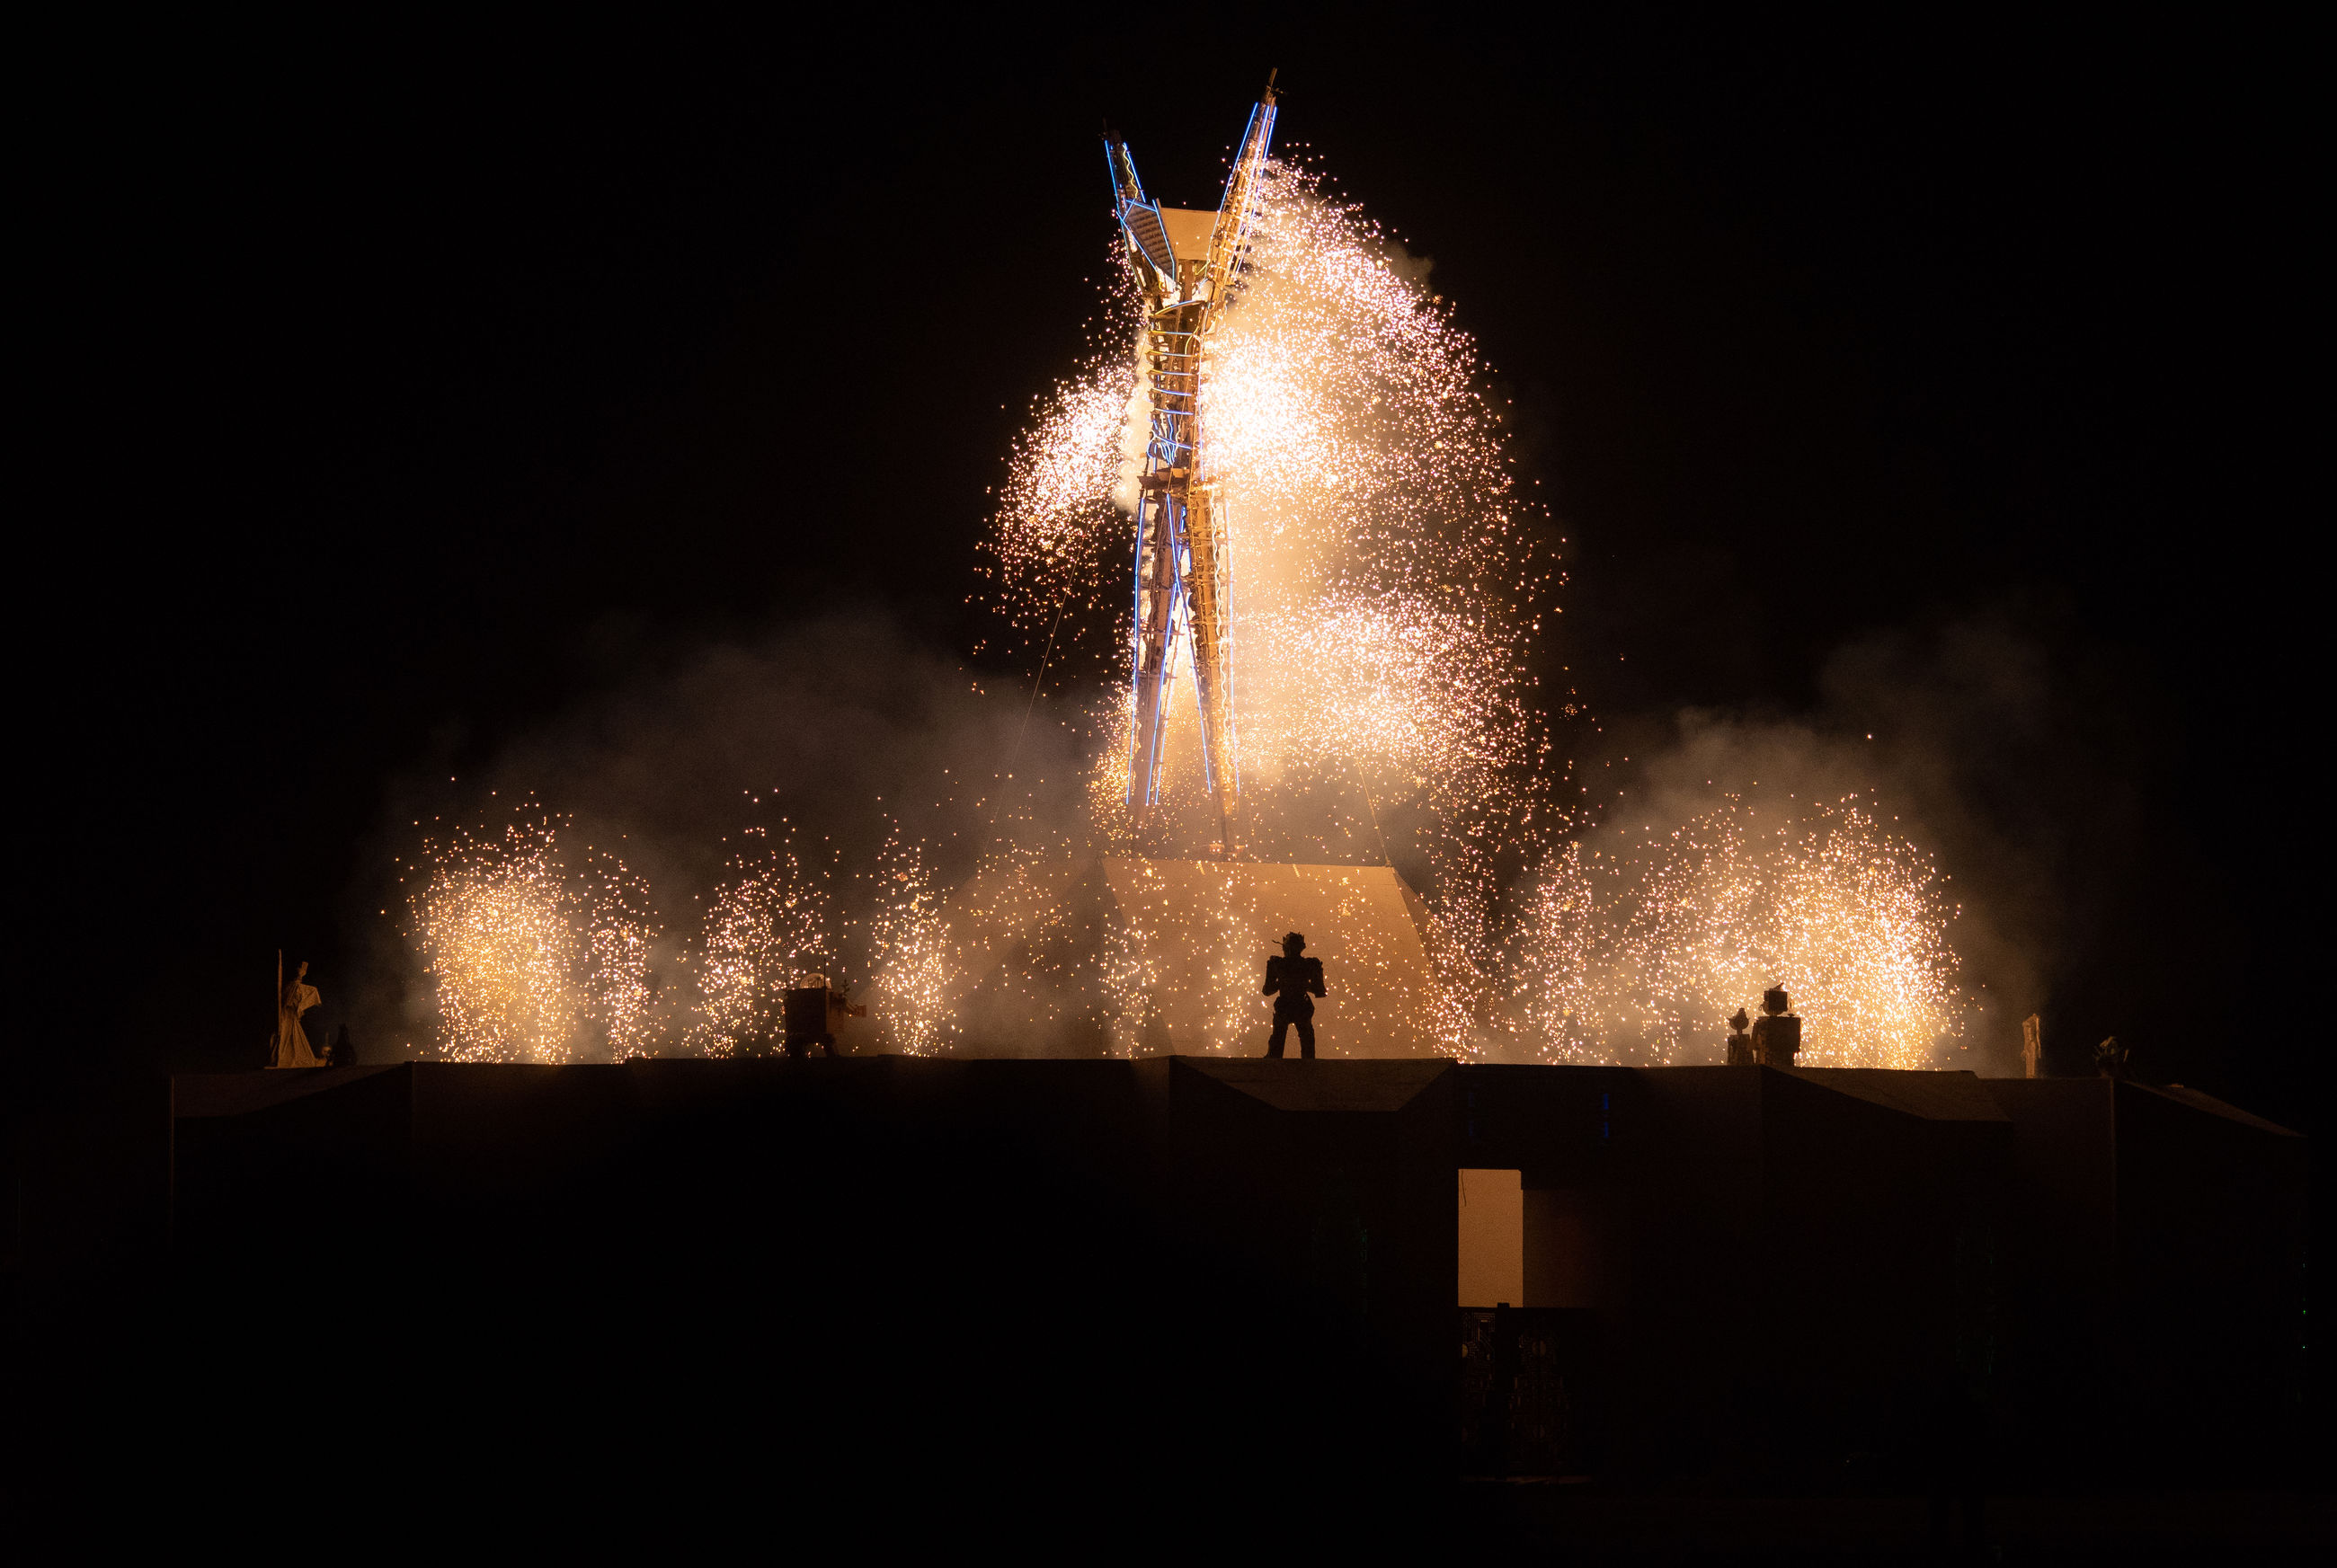 night, motion, arts culture and entertainment, firework, firework display, illuminated, exploding, firework - man made object, glowing, smoke - physical structure, long exposure, celebration, event, nature, group of people, real people, silhouette, architecture, outdoors, sky, sparks